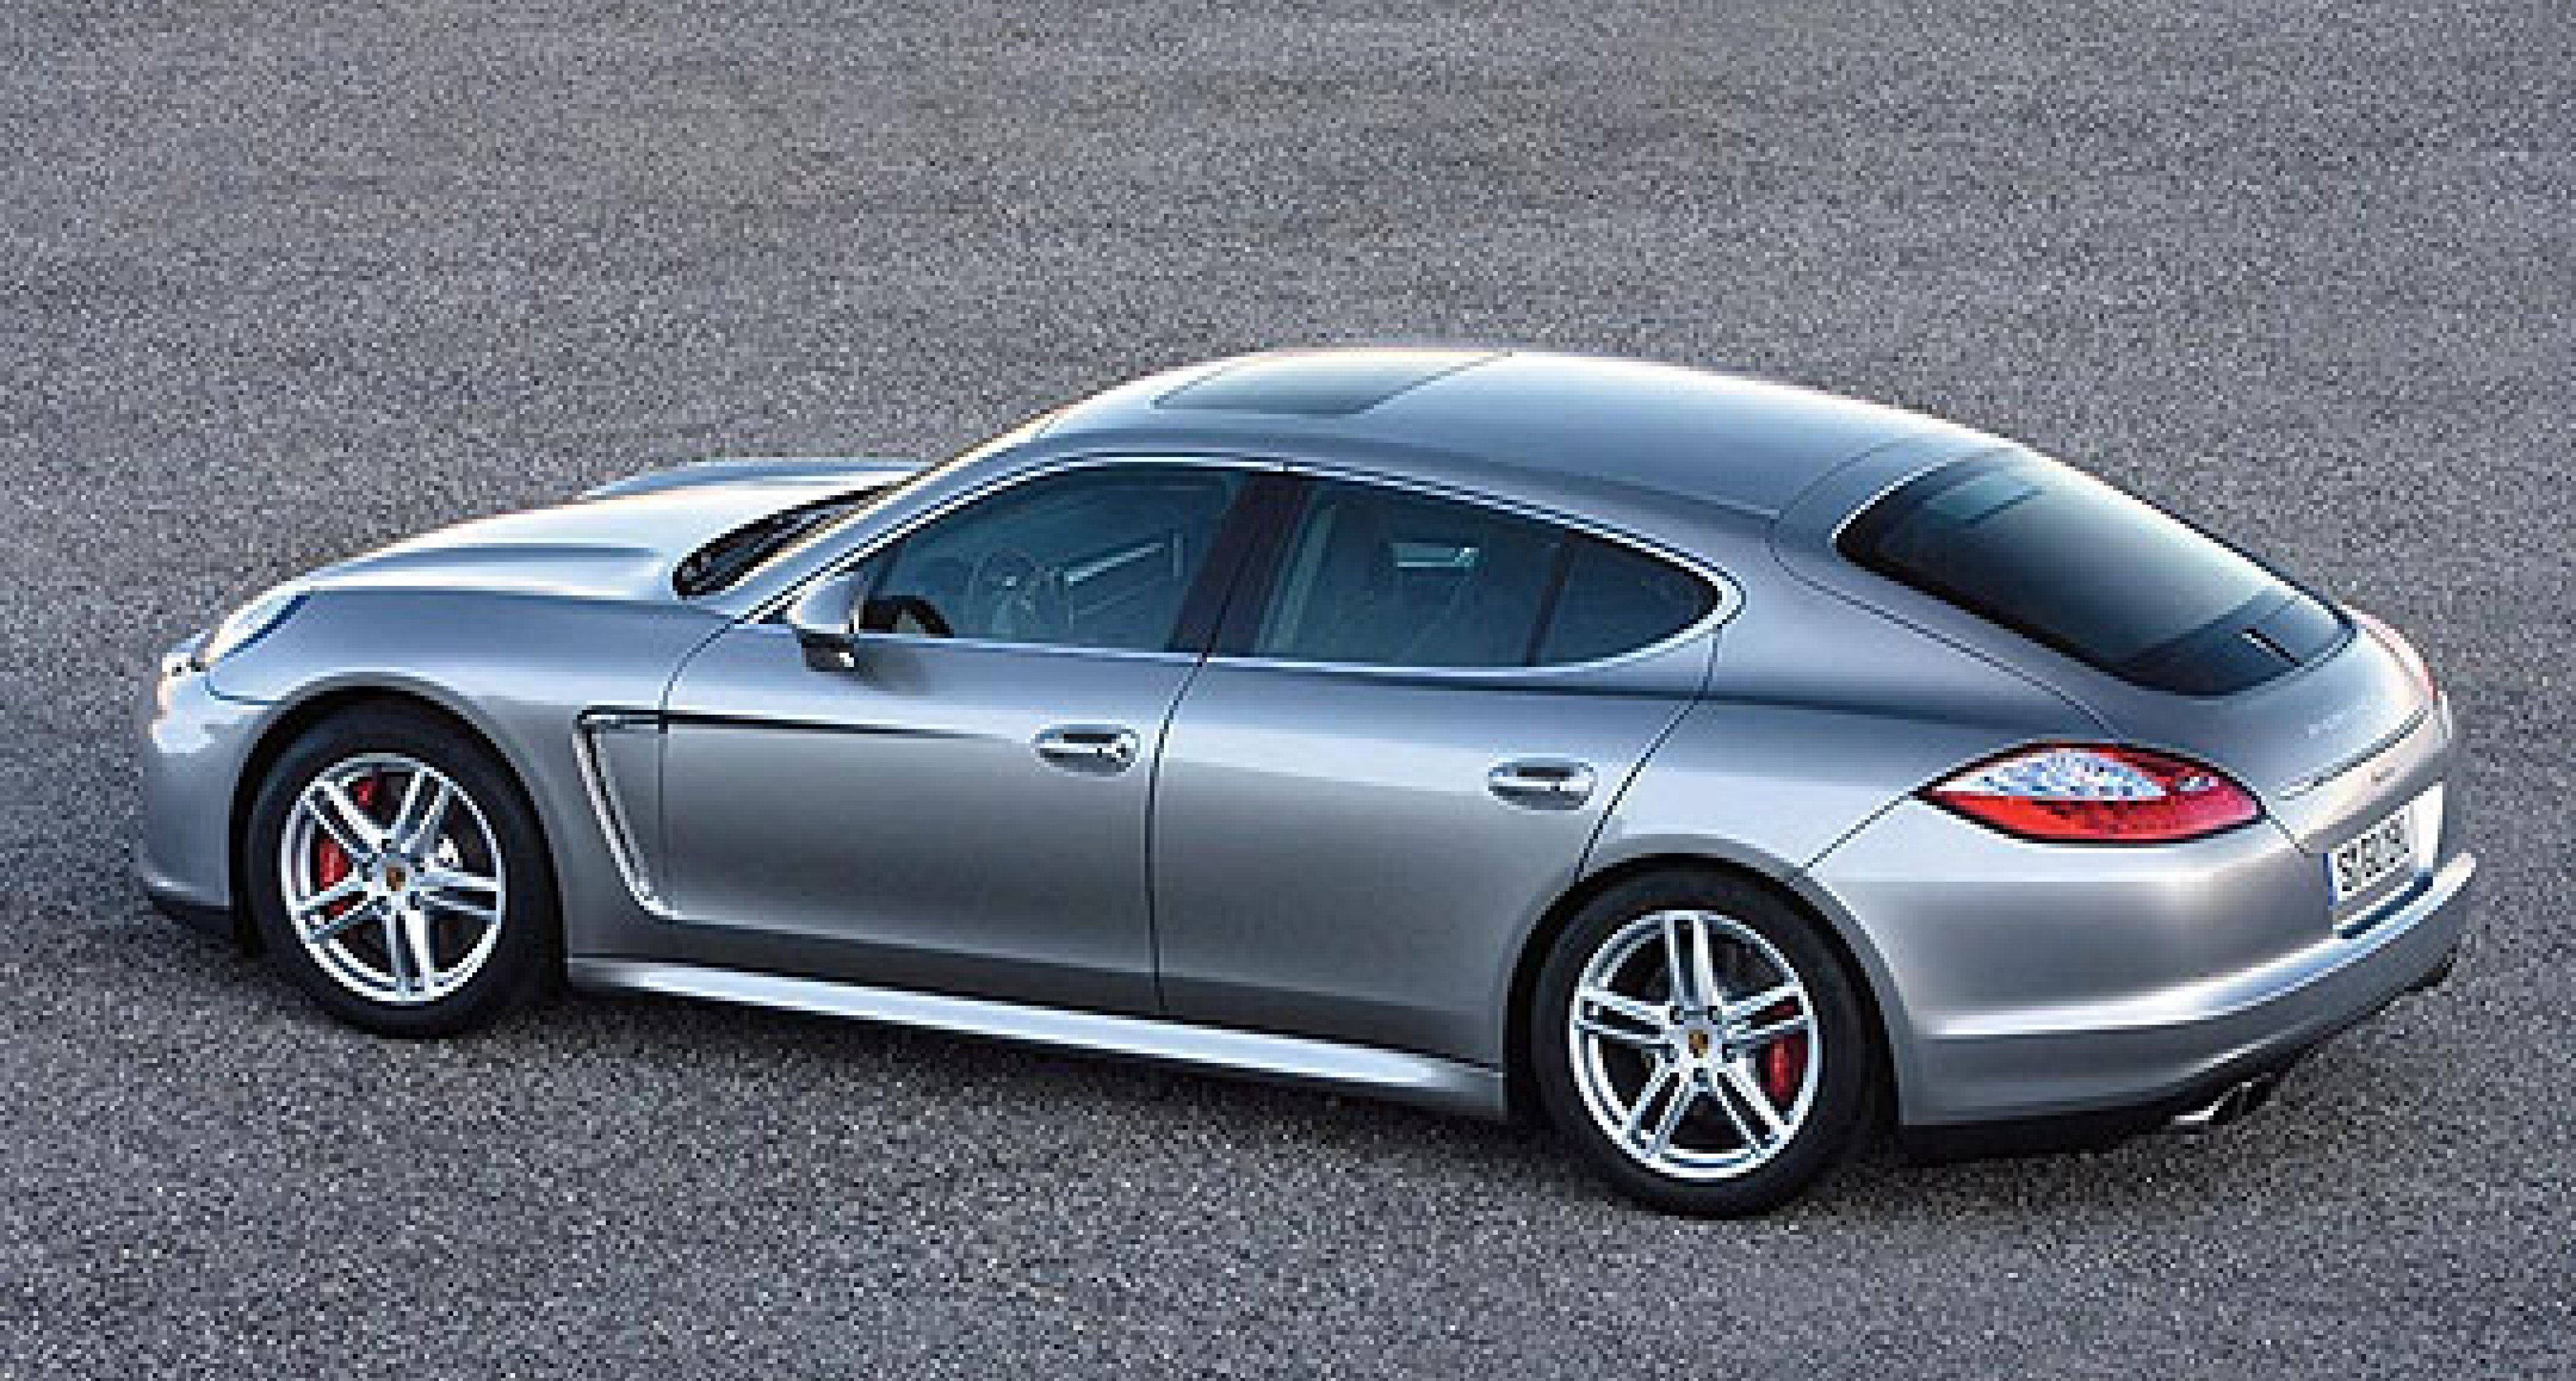 Porsche Panamera: First Official Pictures